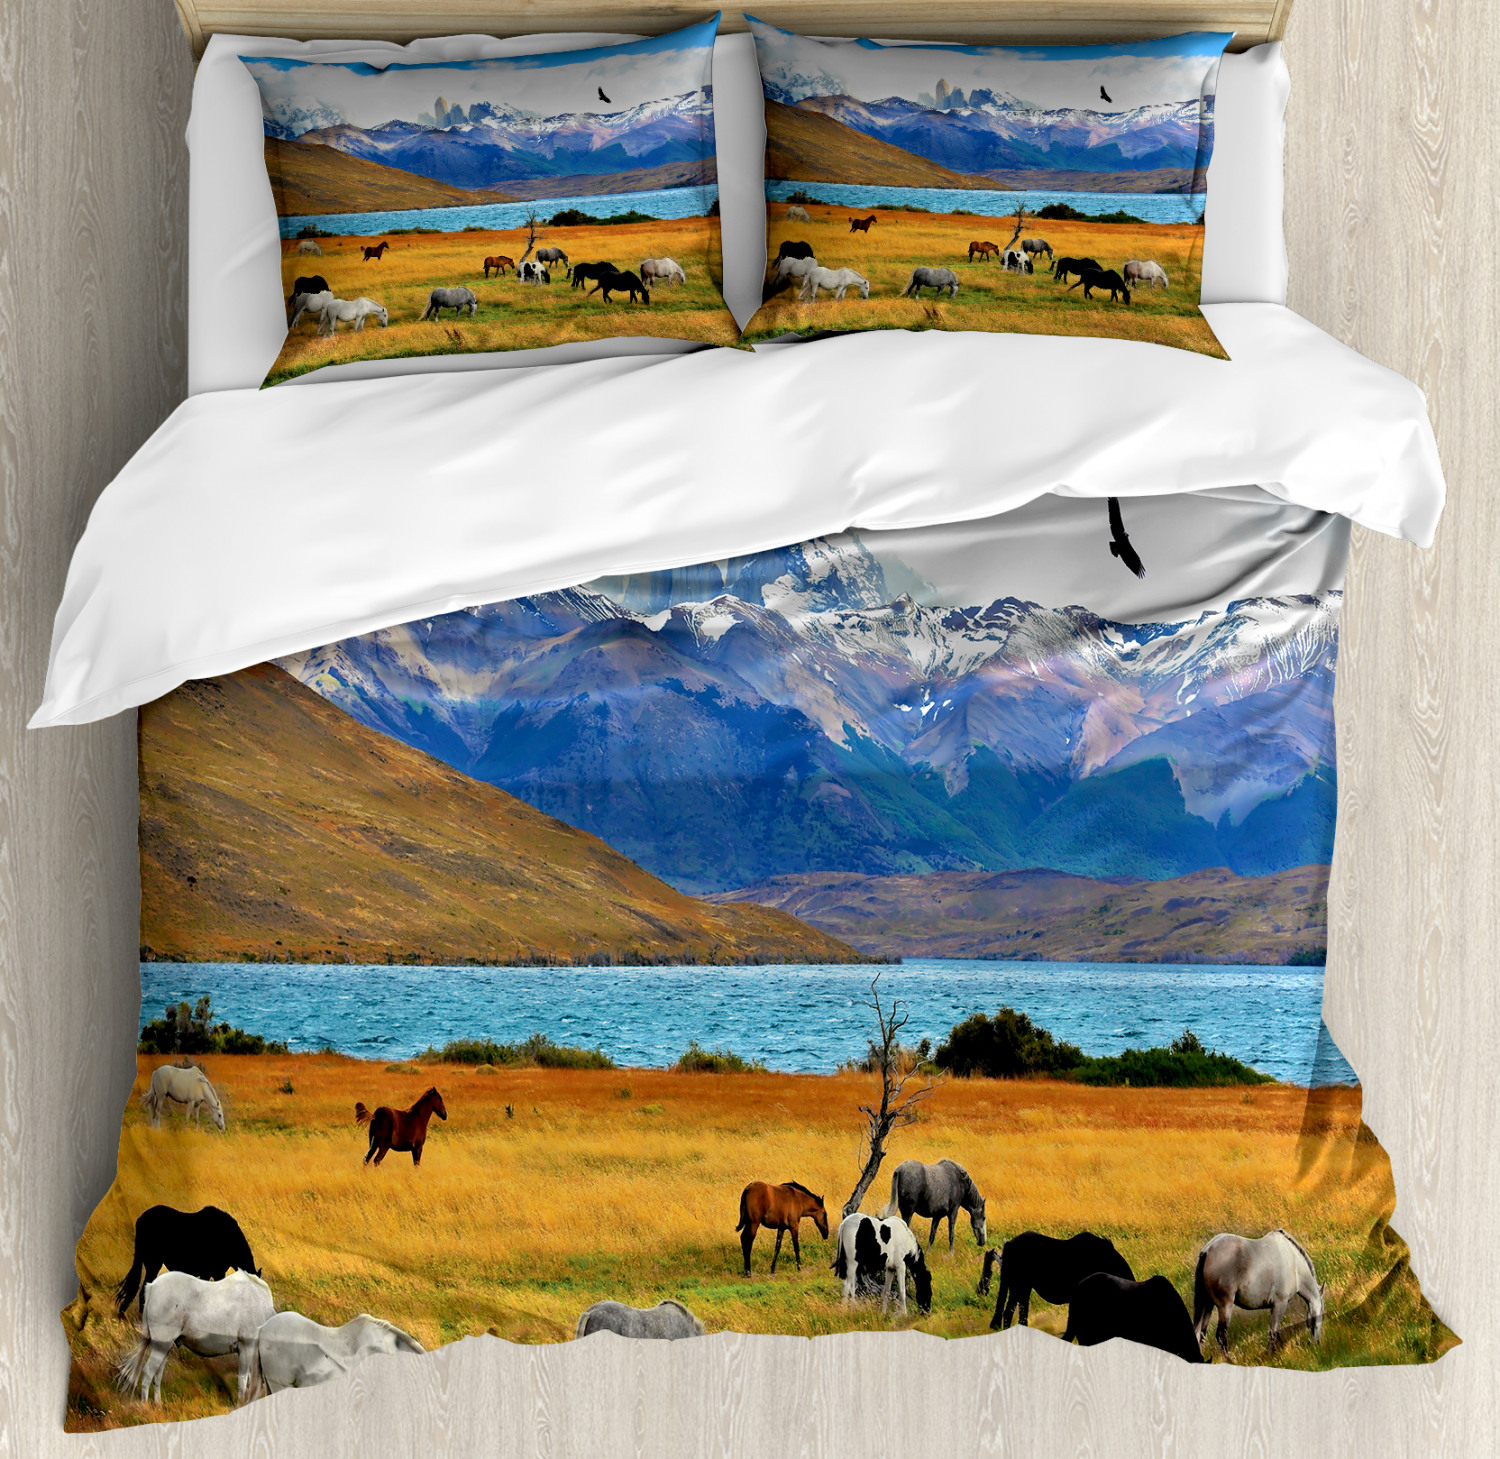 Scenery Duvet Cover Set with Pillow Shams Farm Horse in Mountain Print